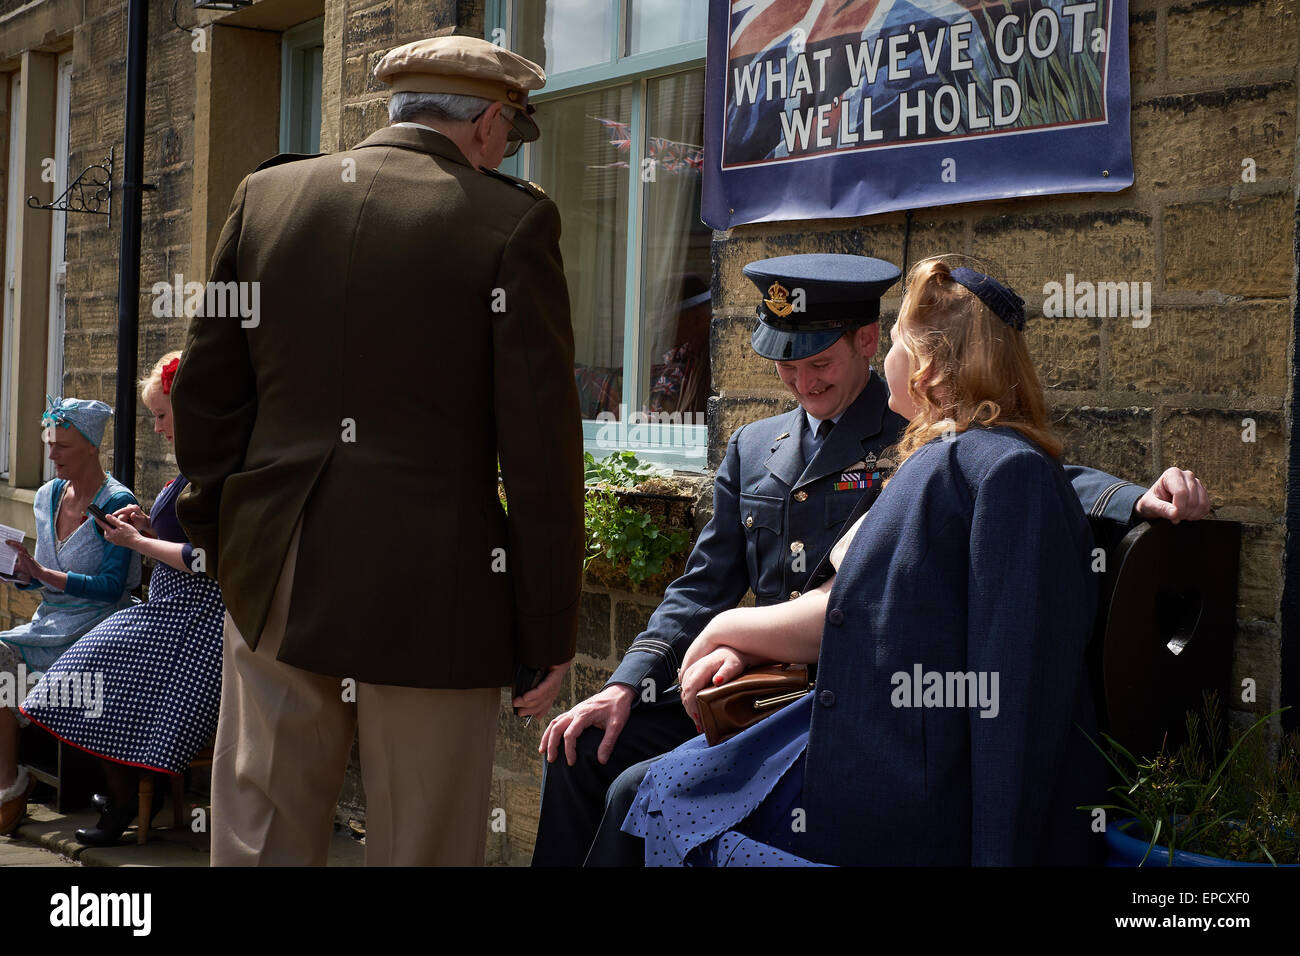 Coy looking man in British RAF uniform with girl Stock Photo